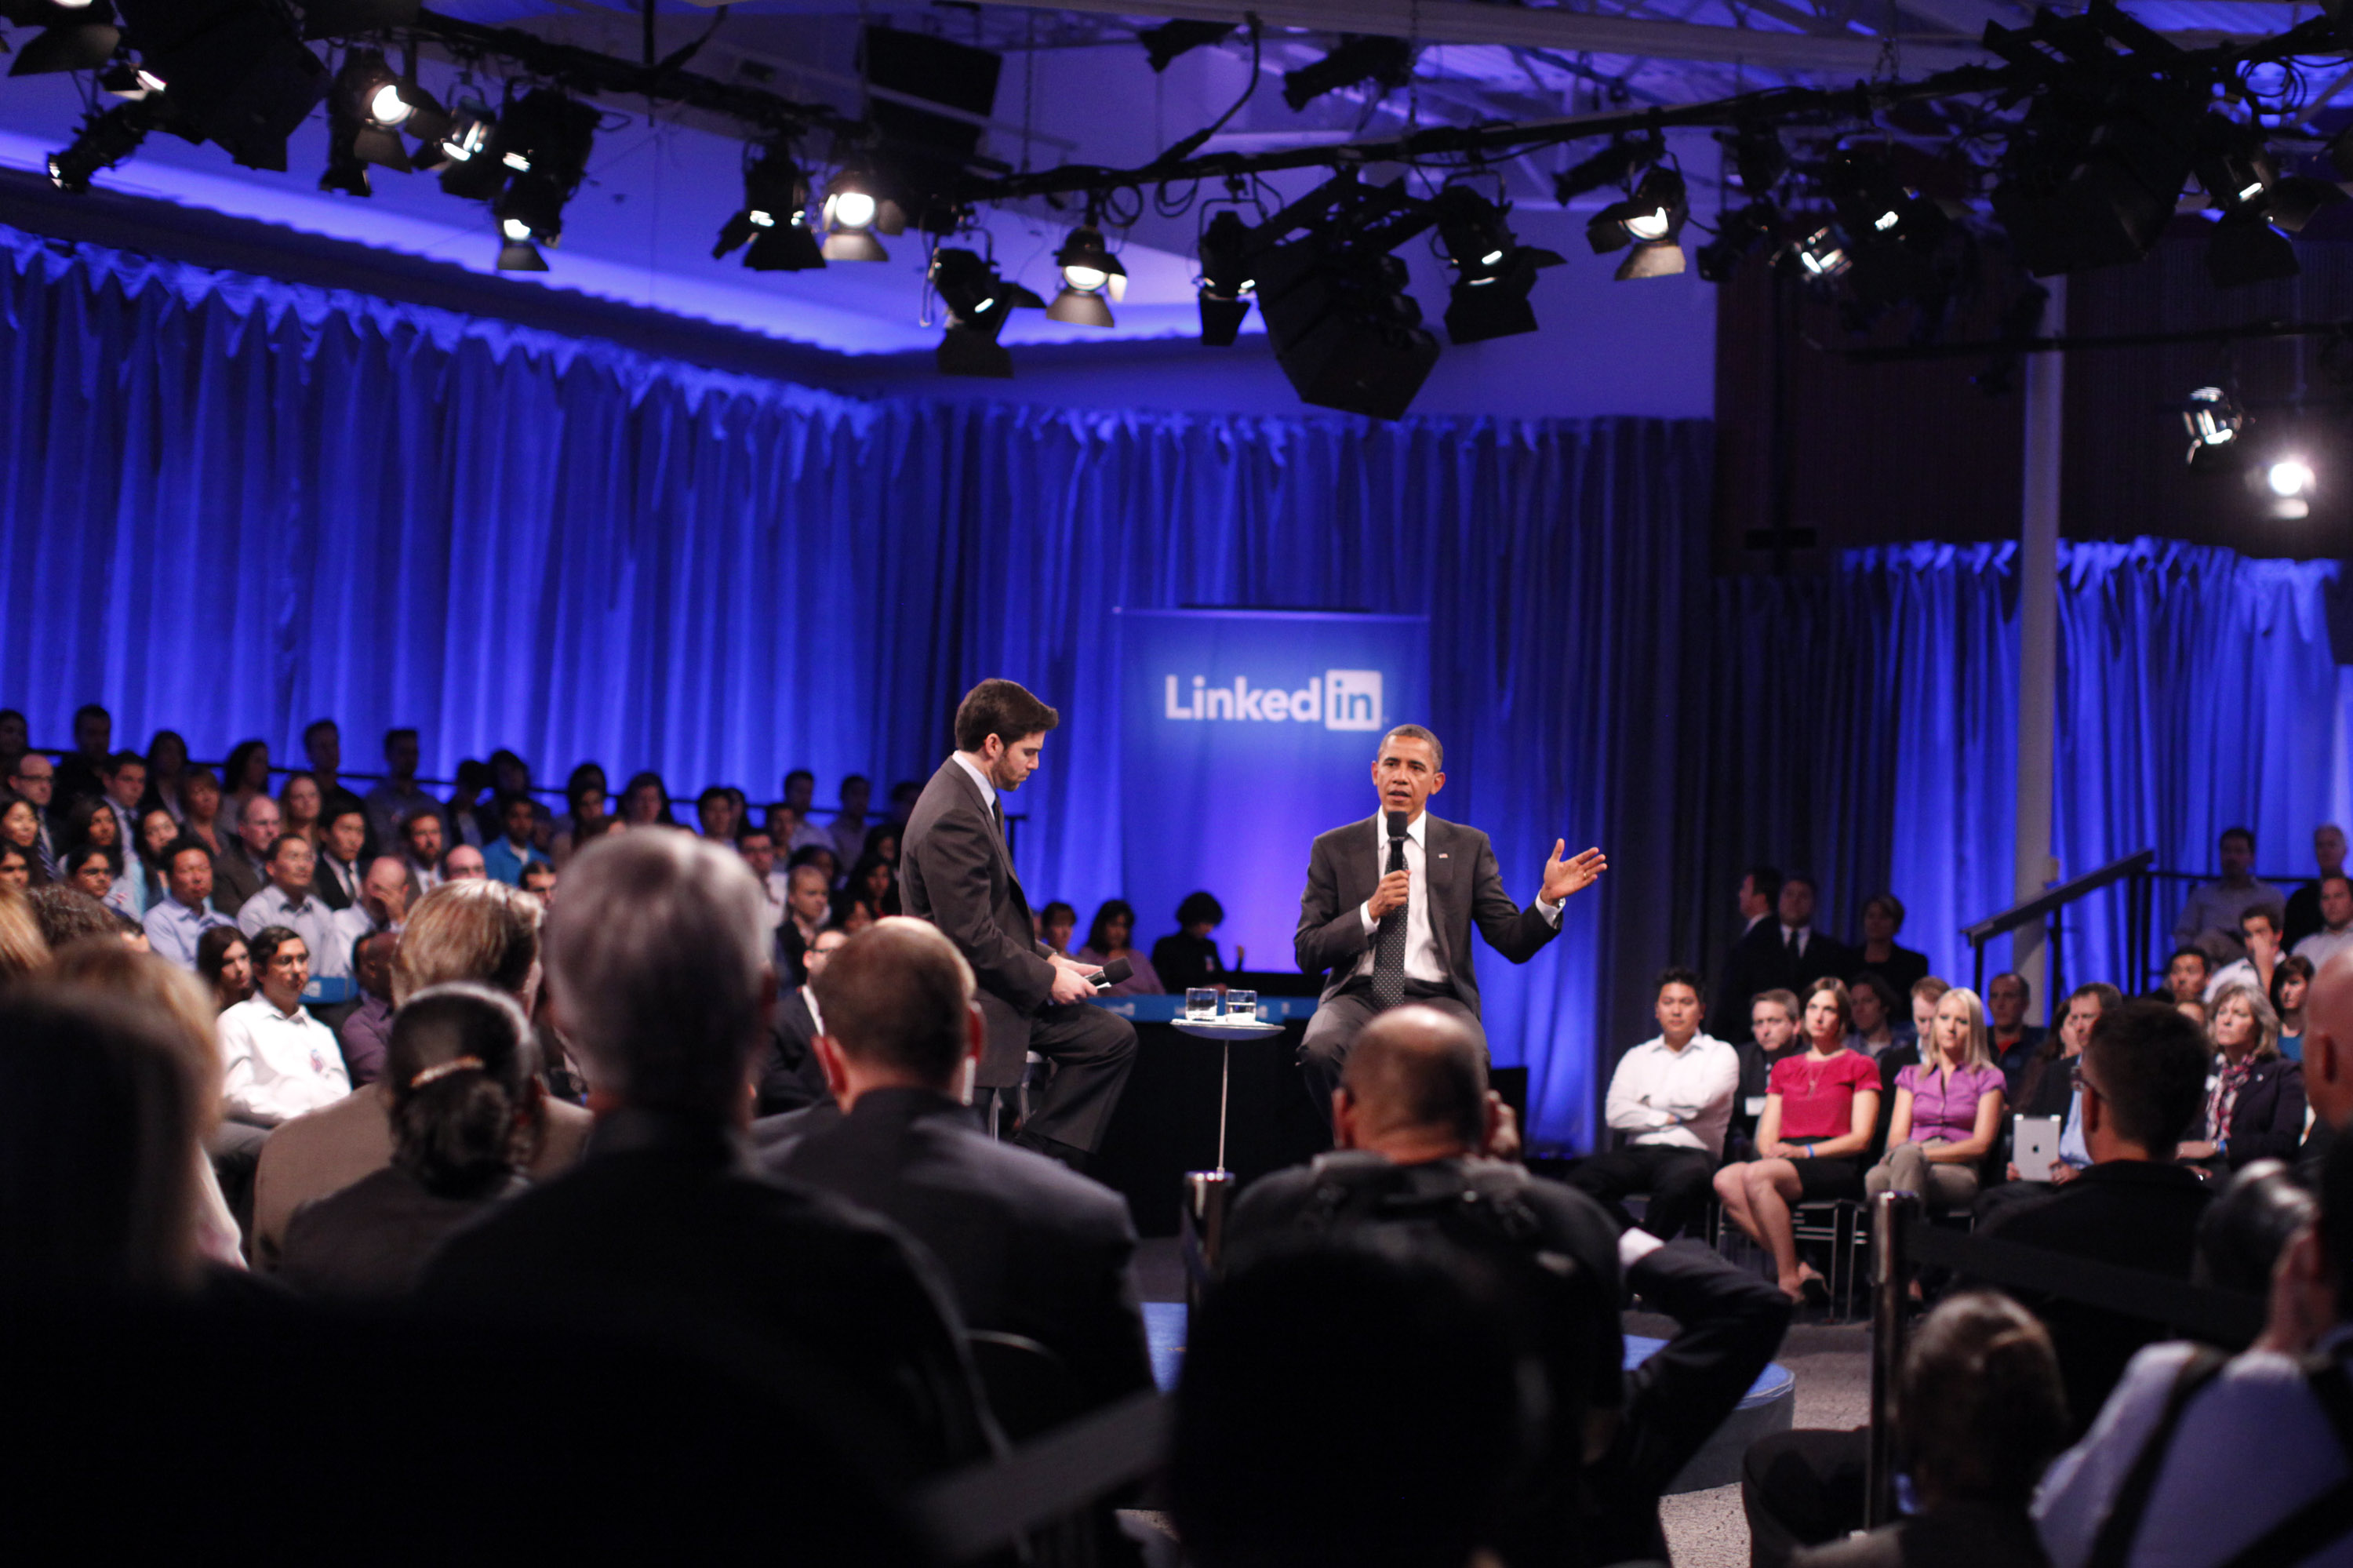 LinkenIn Corp CEO Jeff Weiner and U.S. President Barack Obama, (R), field a question from the audience during town hall meeting hosted by Linkedin Corp. last September. (Stephen Lam/Getty Images)